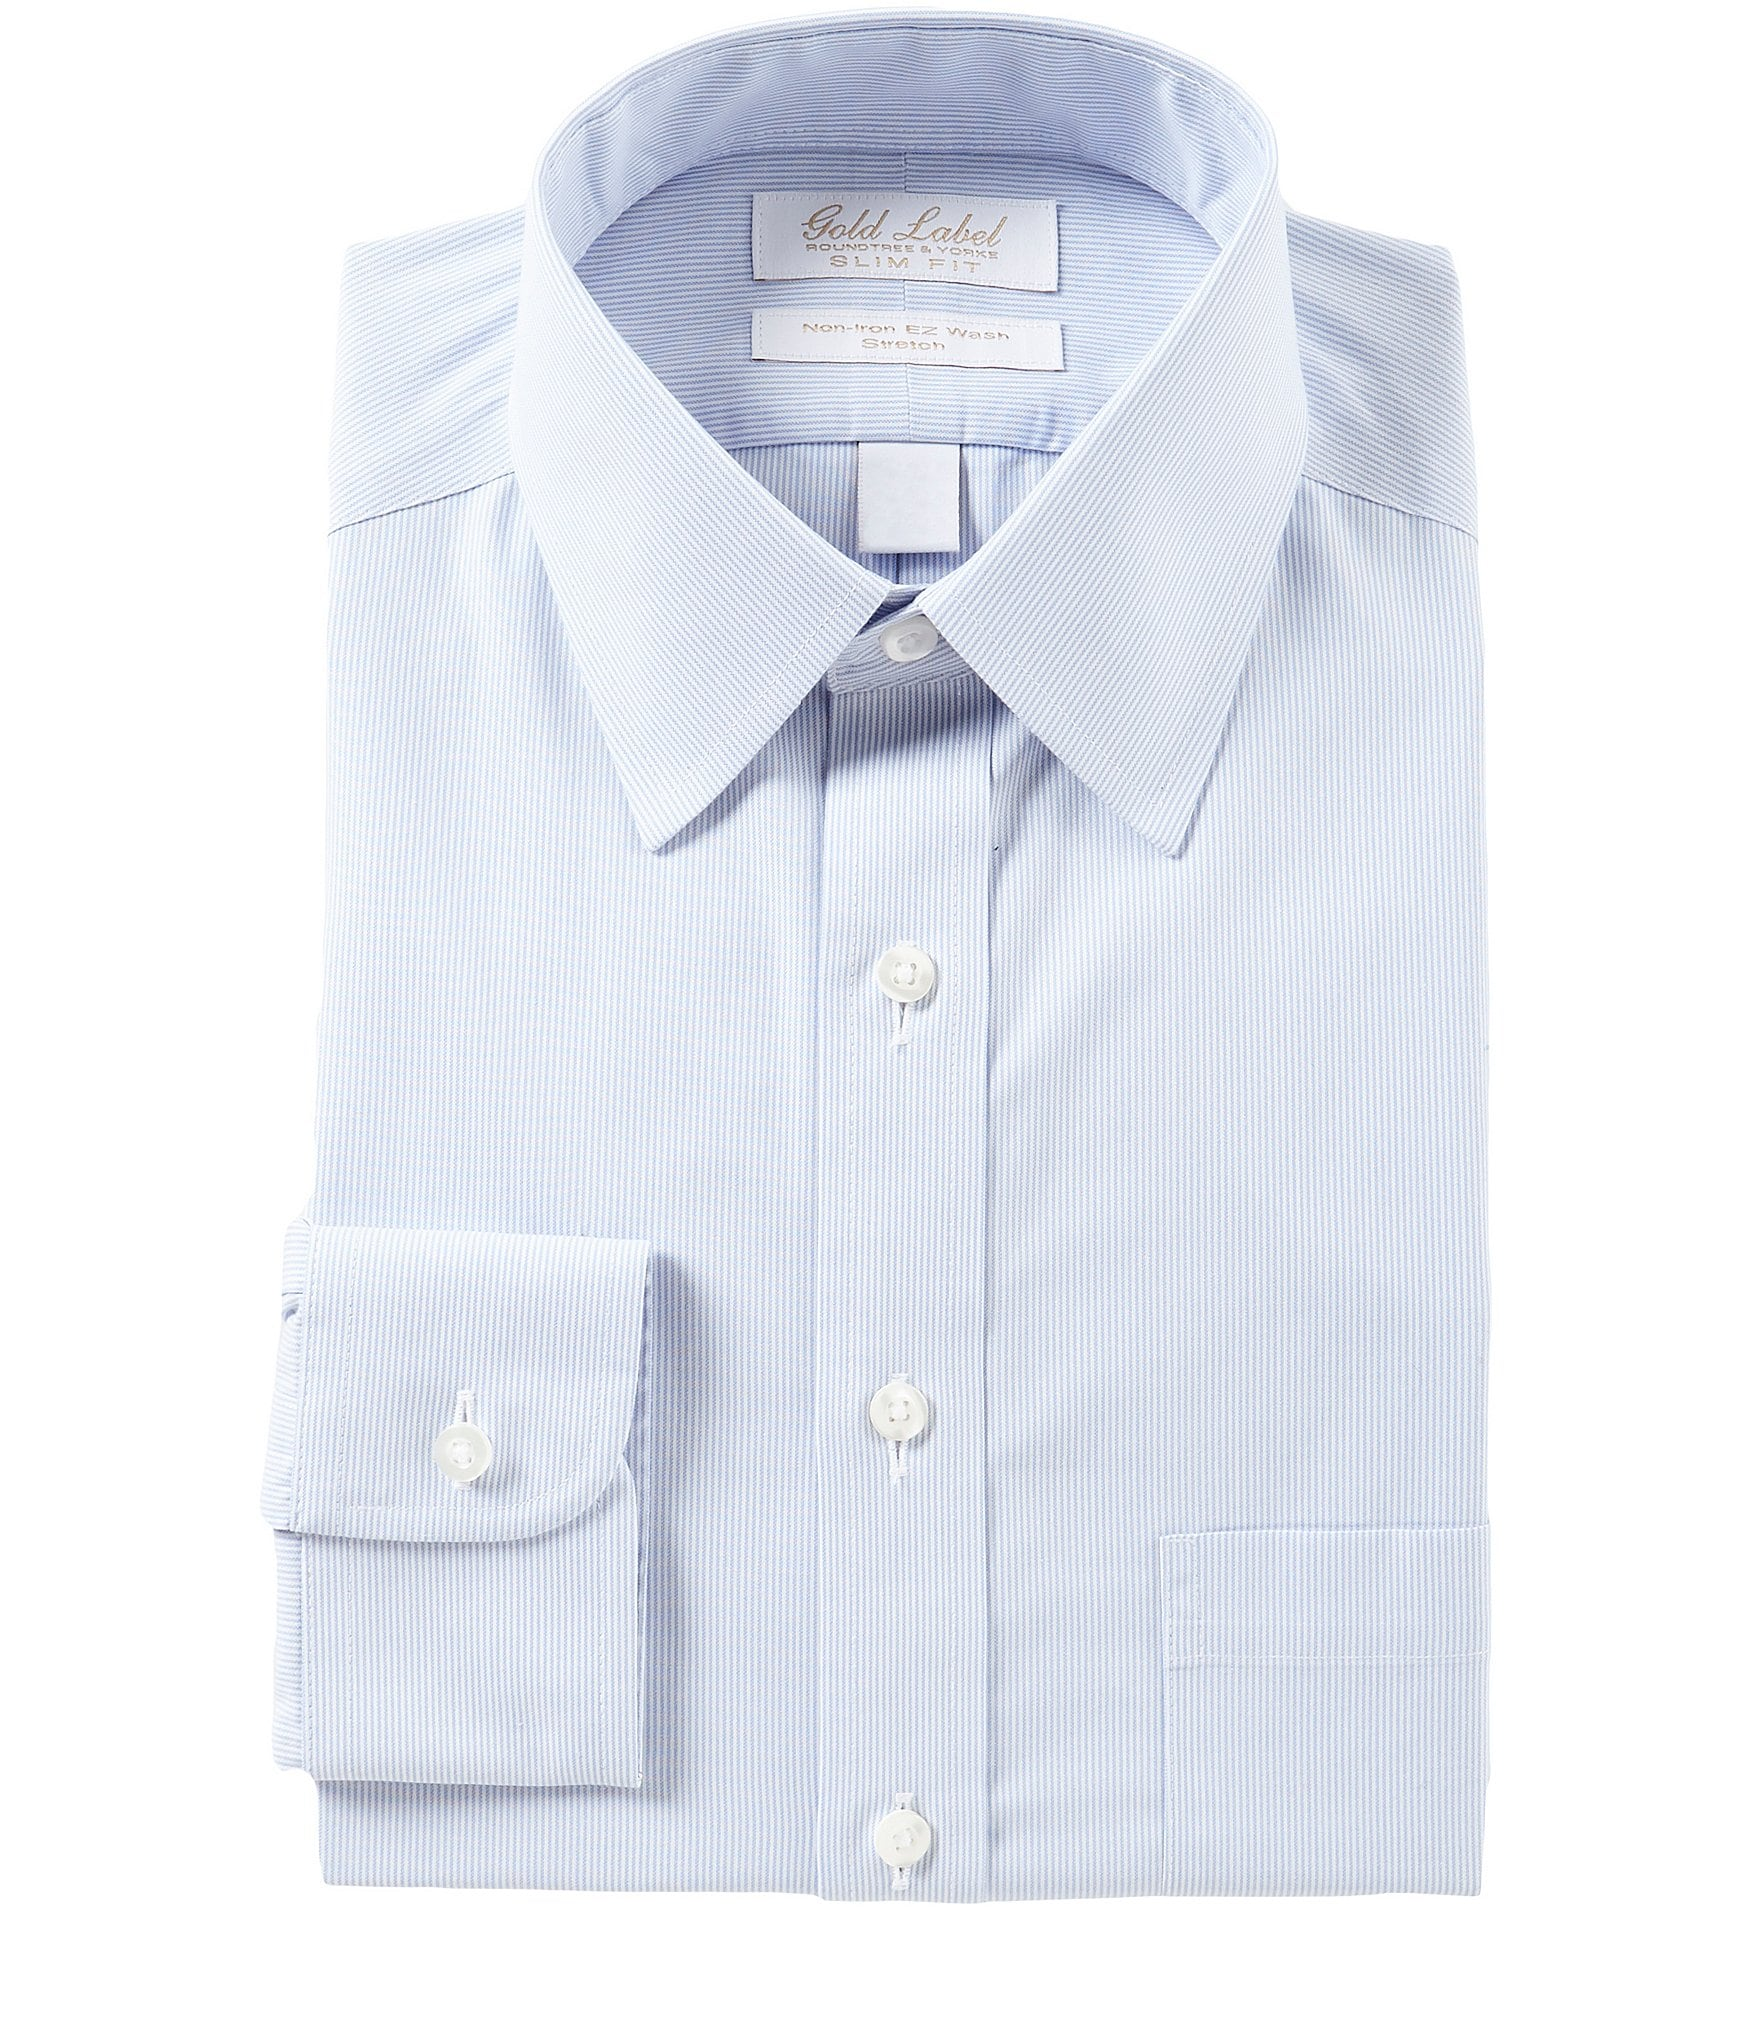 Mens Shirts On Sale At Macys